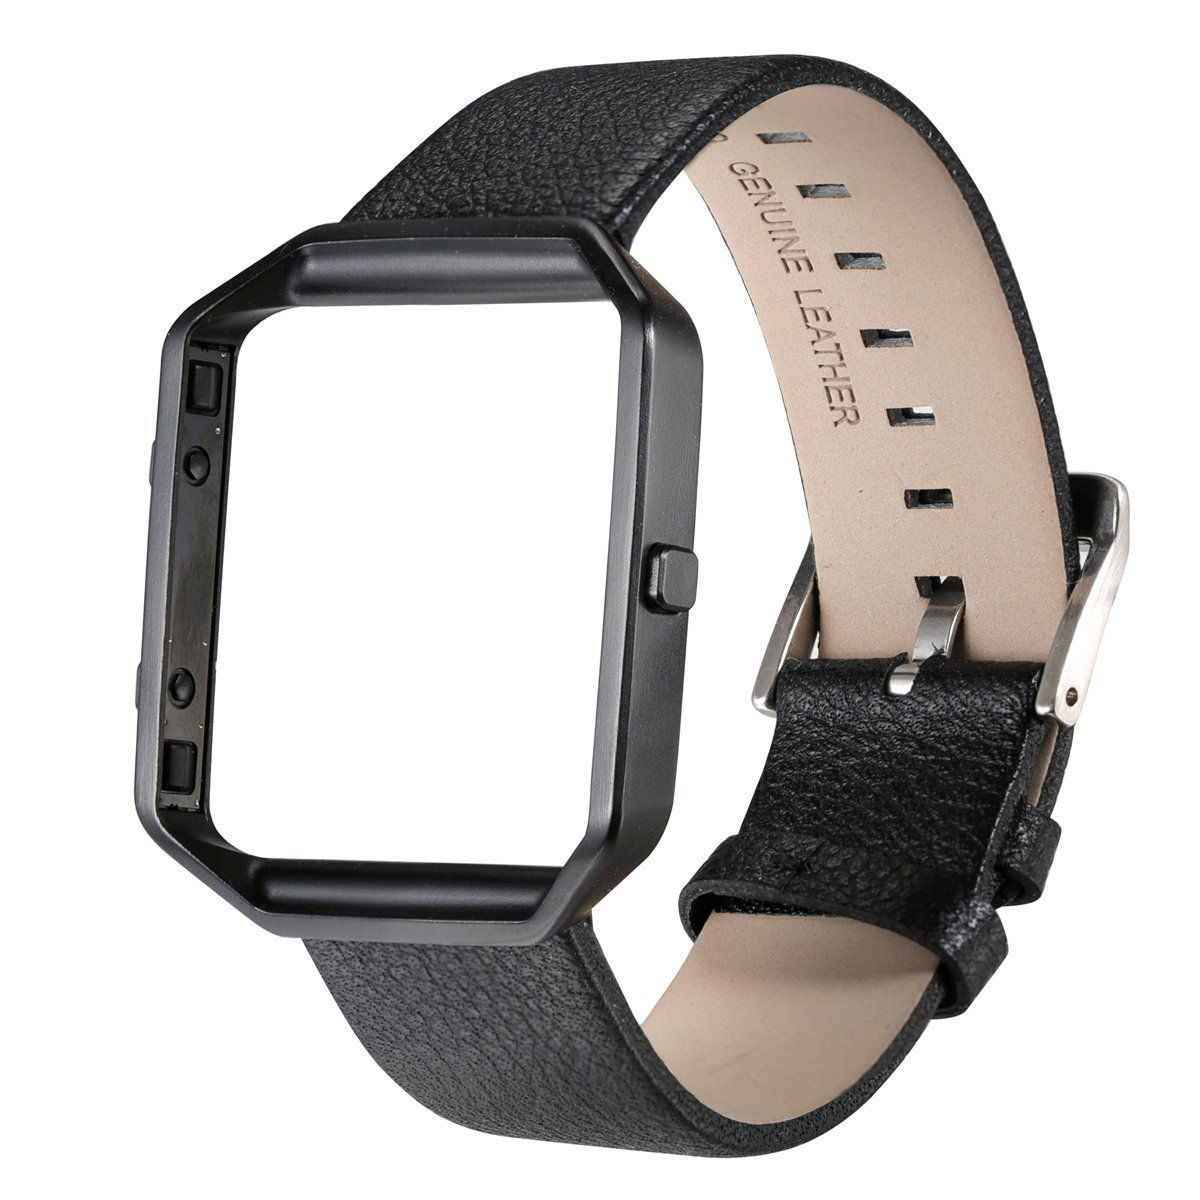 bayite for Fitbit Blaze Bands Accessory Genuine Leather Wristband with Frame for Fitbit Blaze Smart Watch